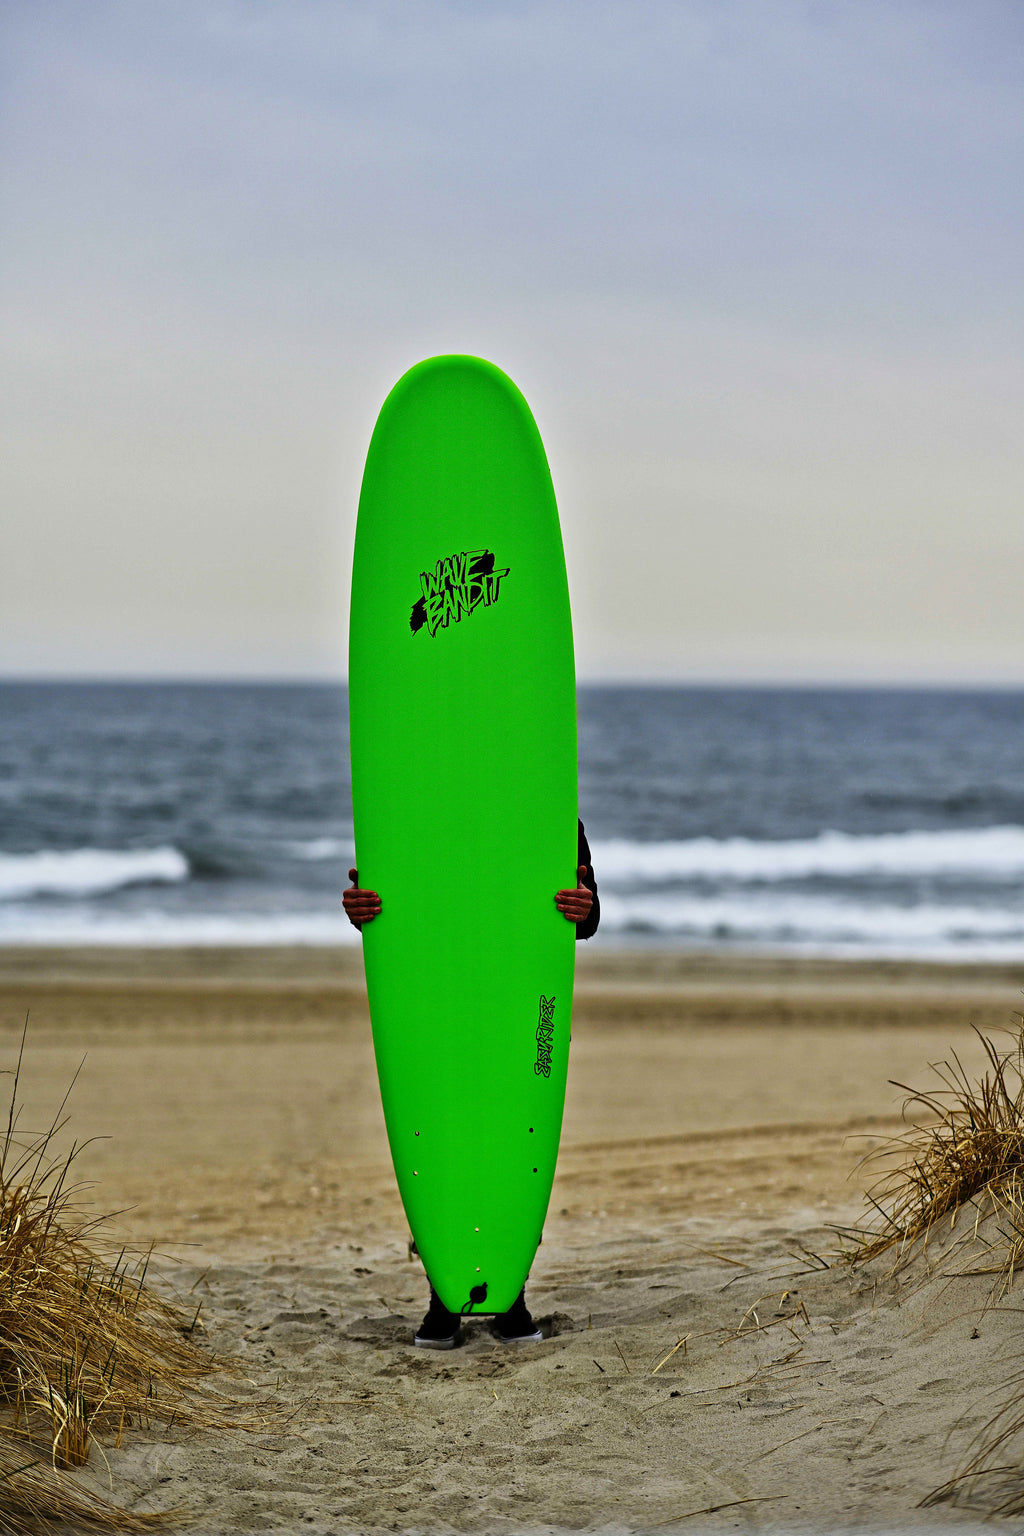 Catch Surf - Wave Bandit EZ Rider 8'